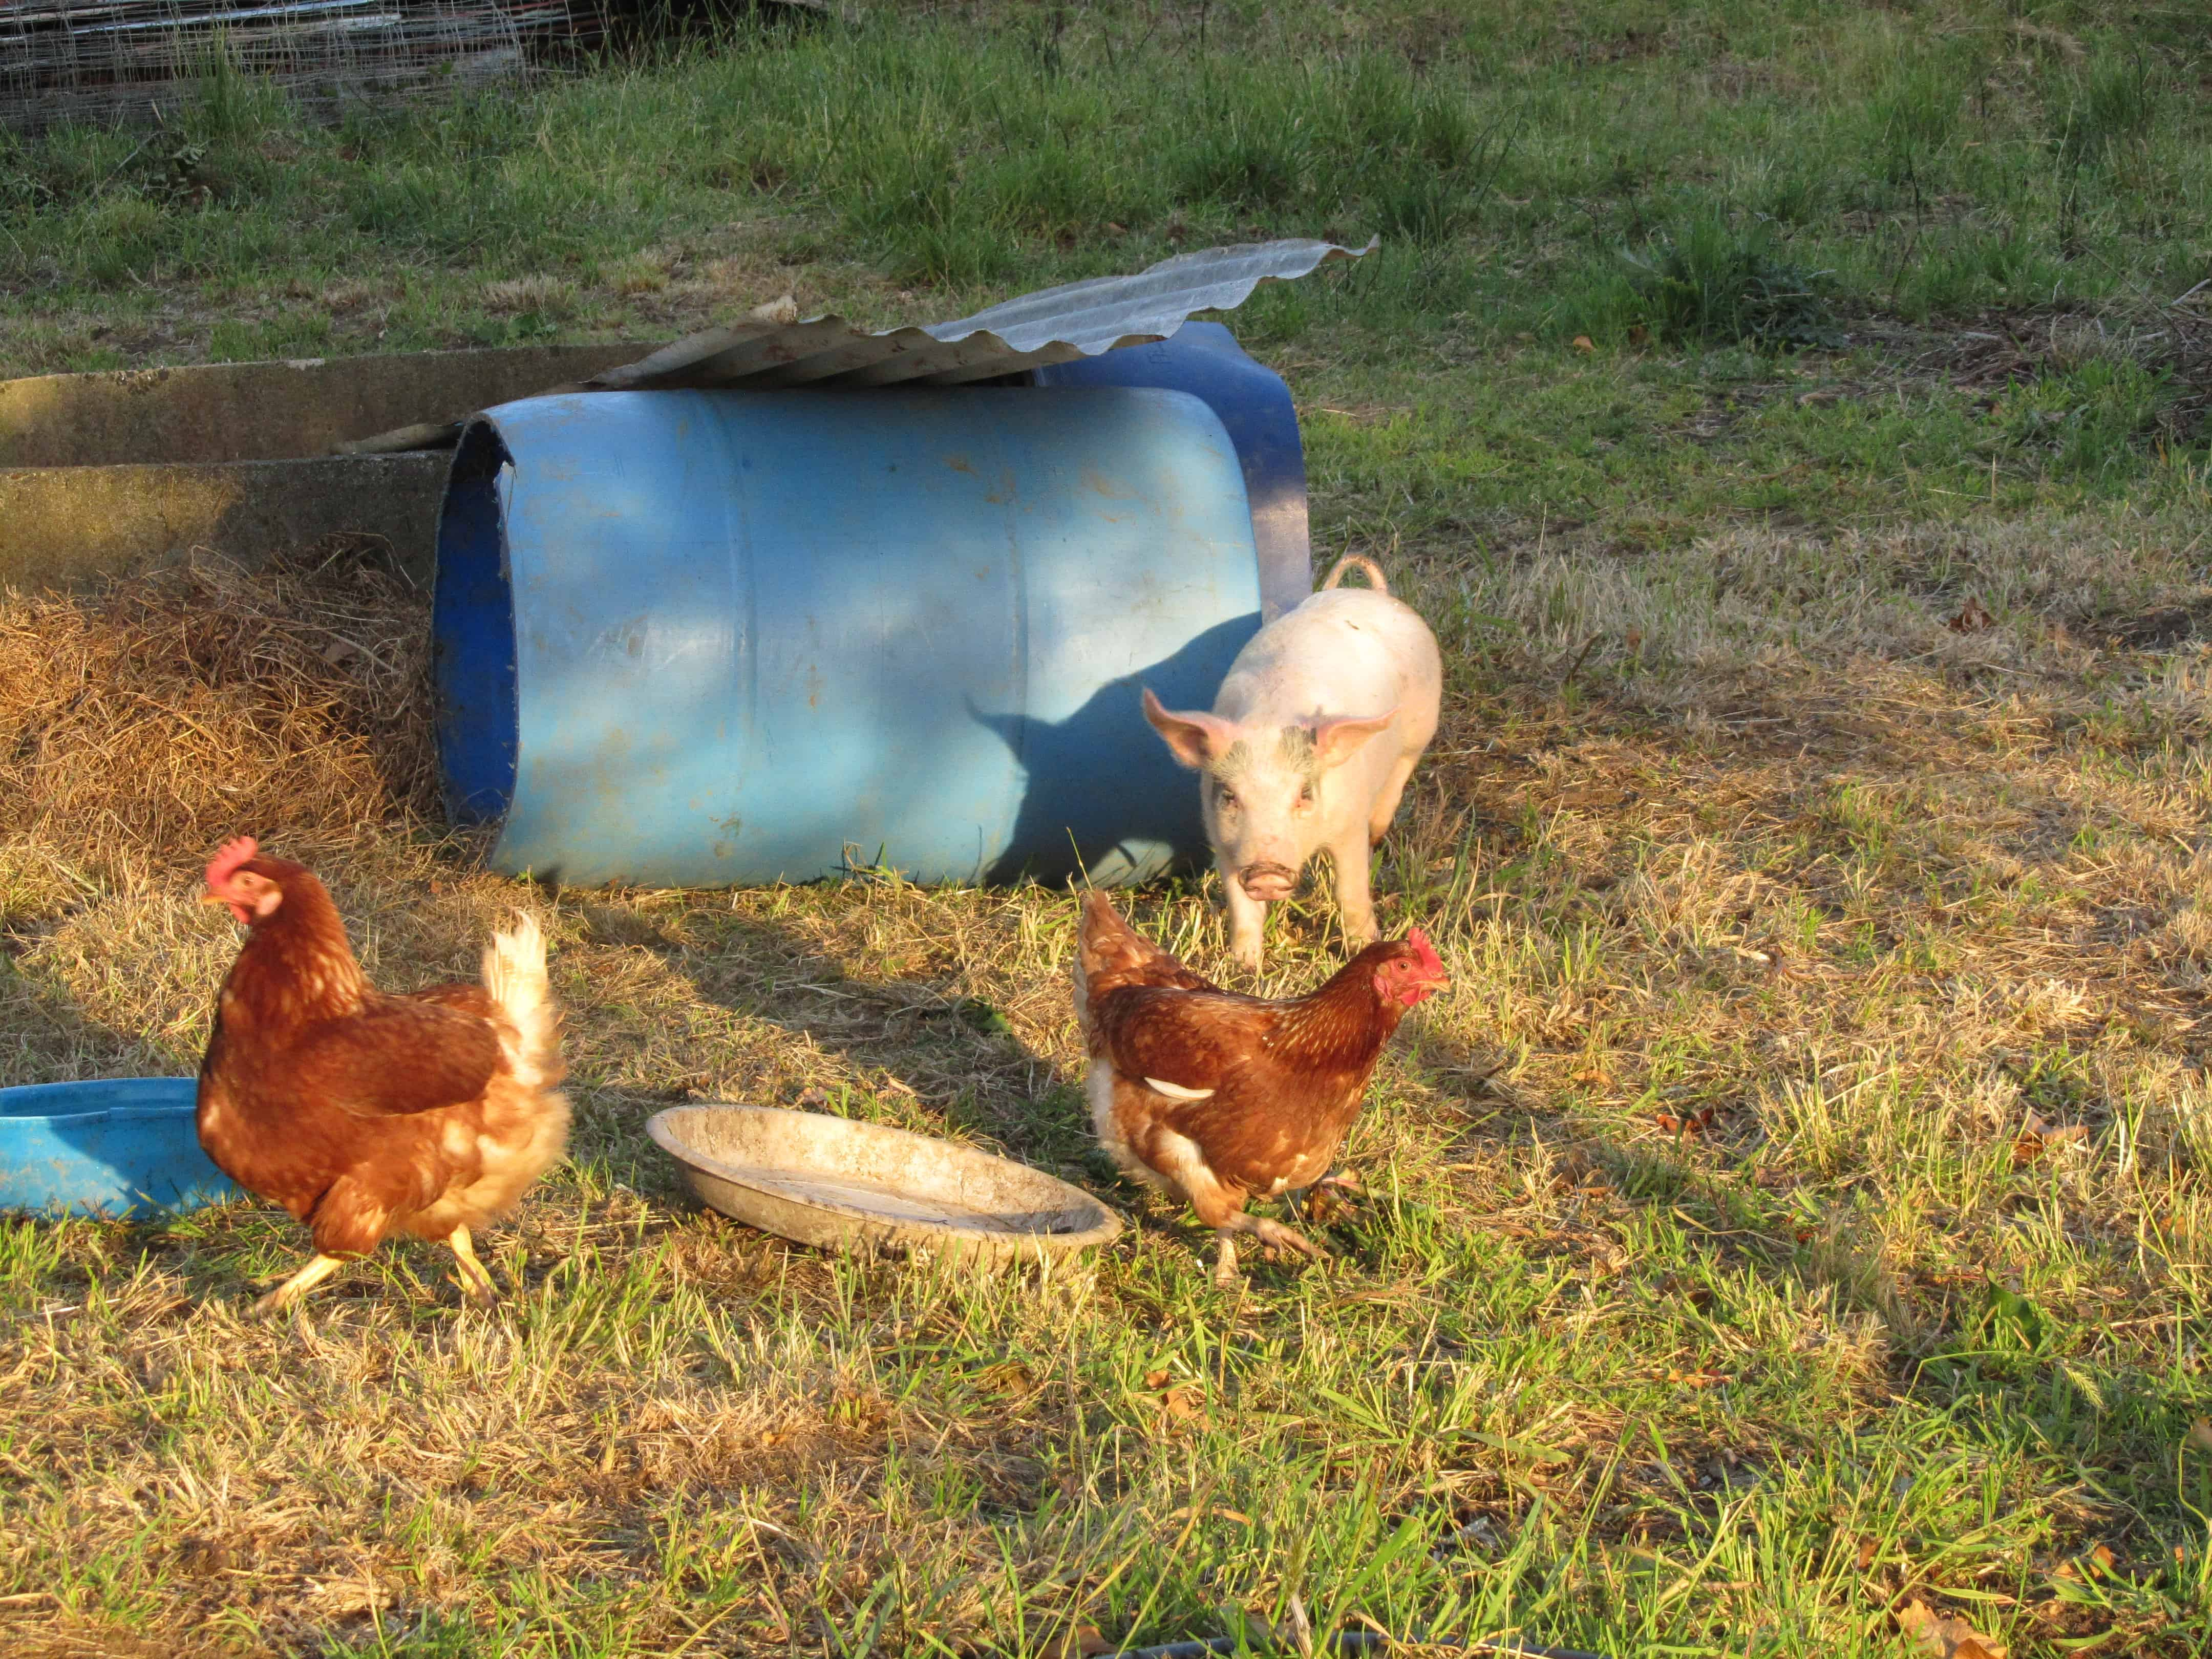 Hanging out with the chooks